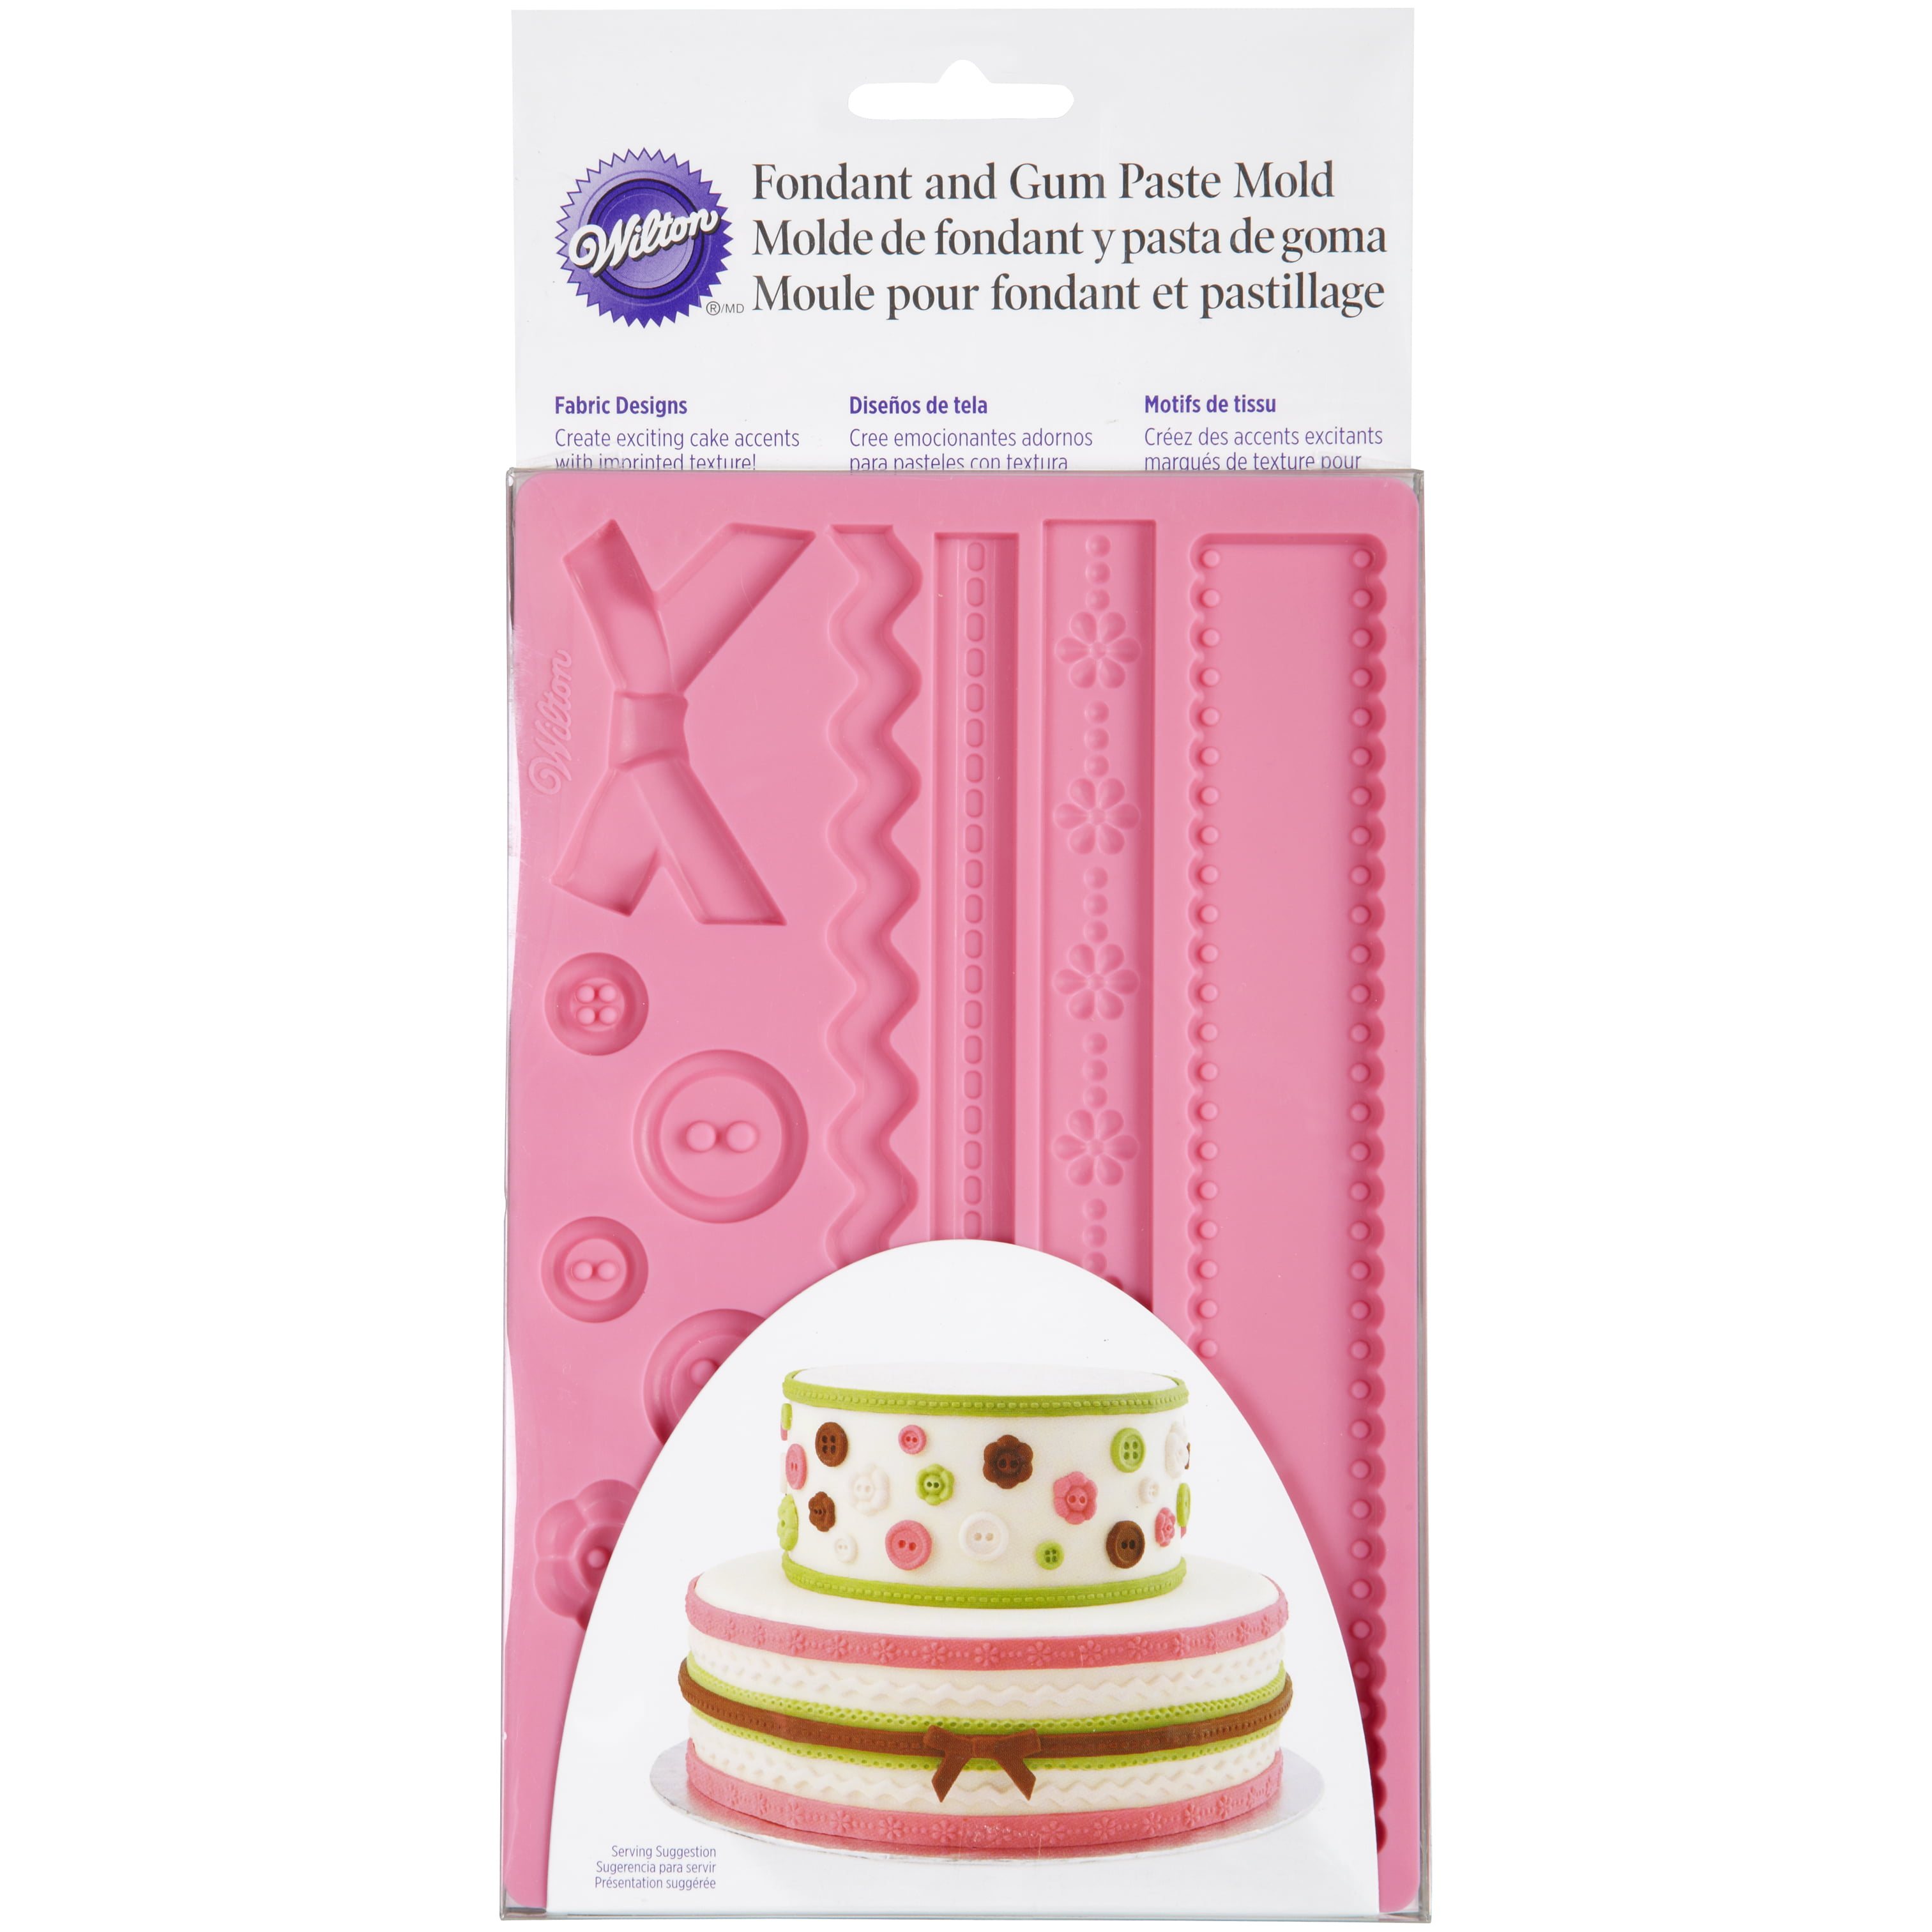 Wilton Ribbon and Fabric Fondant and Gum Paste Mold by Wilton